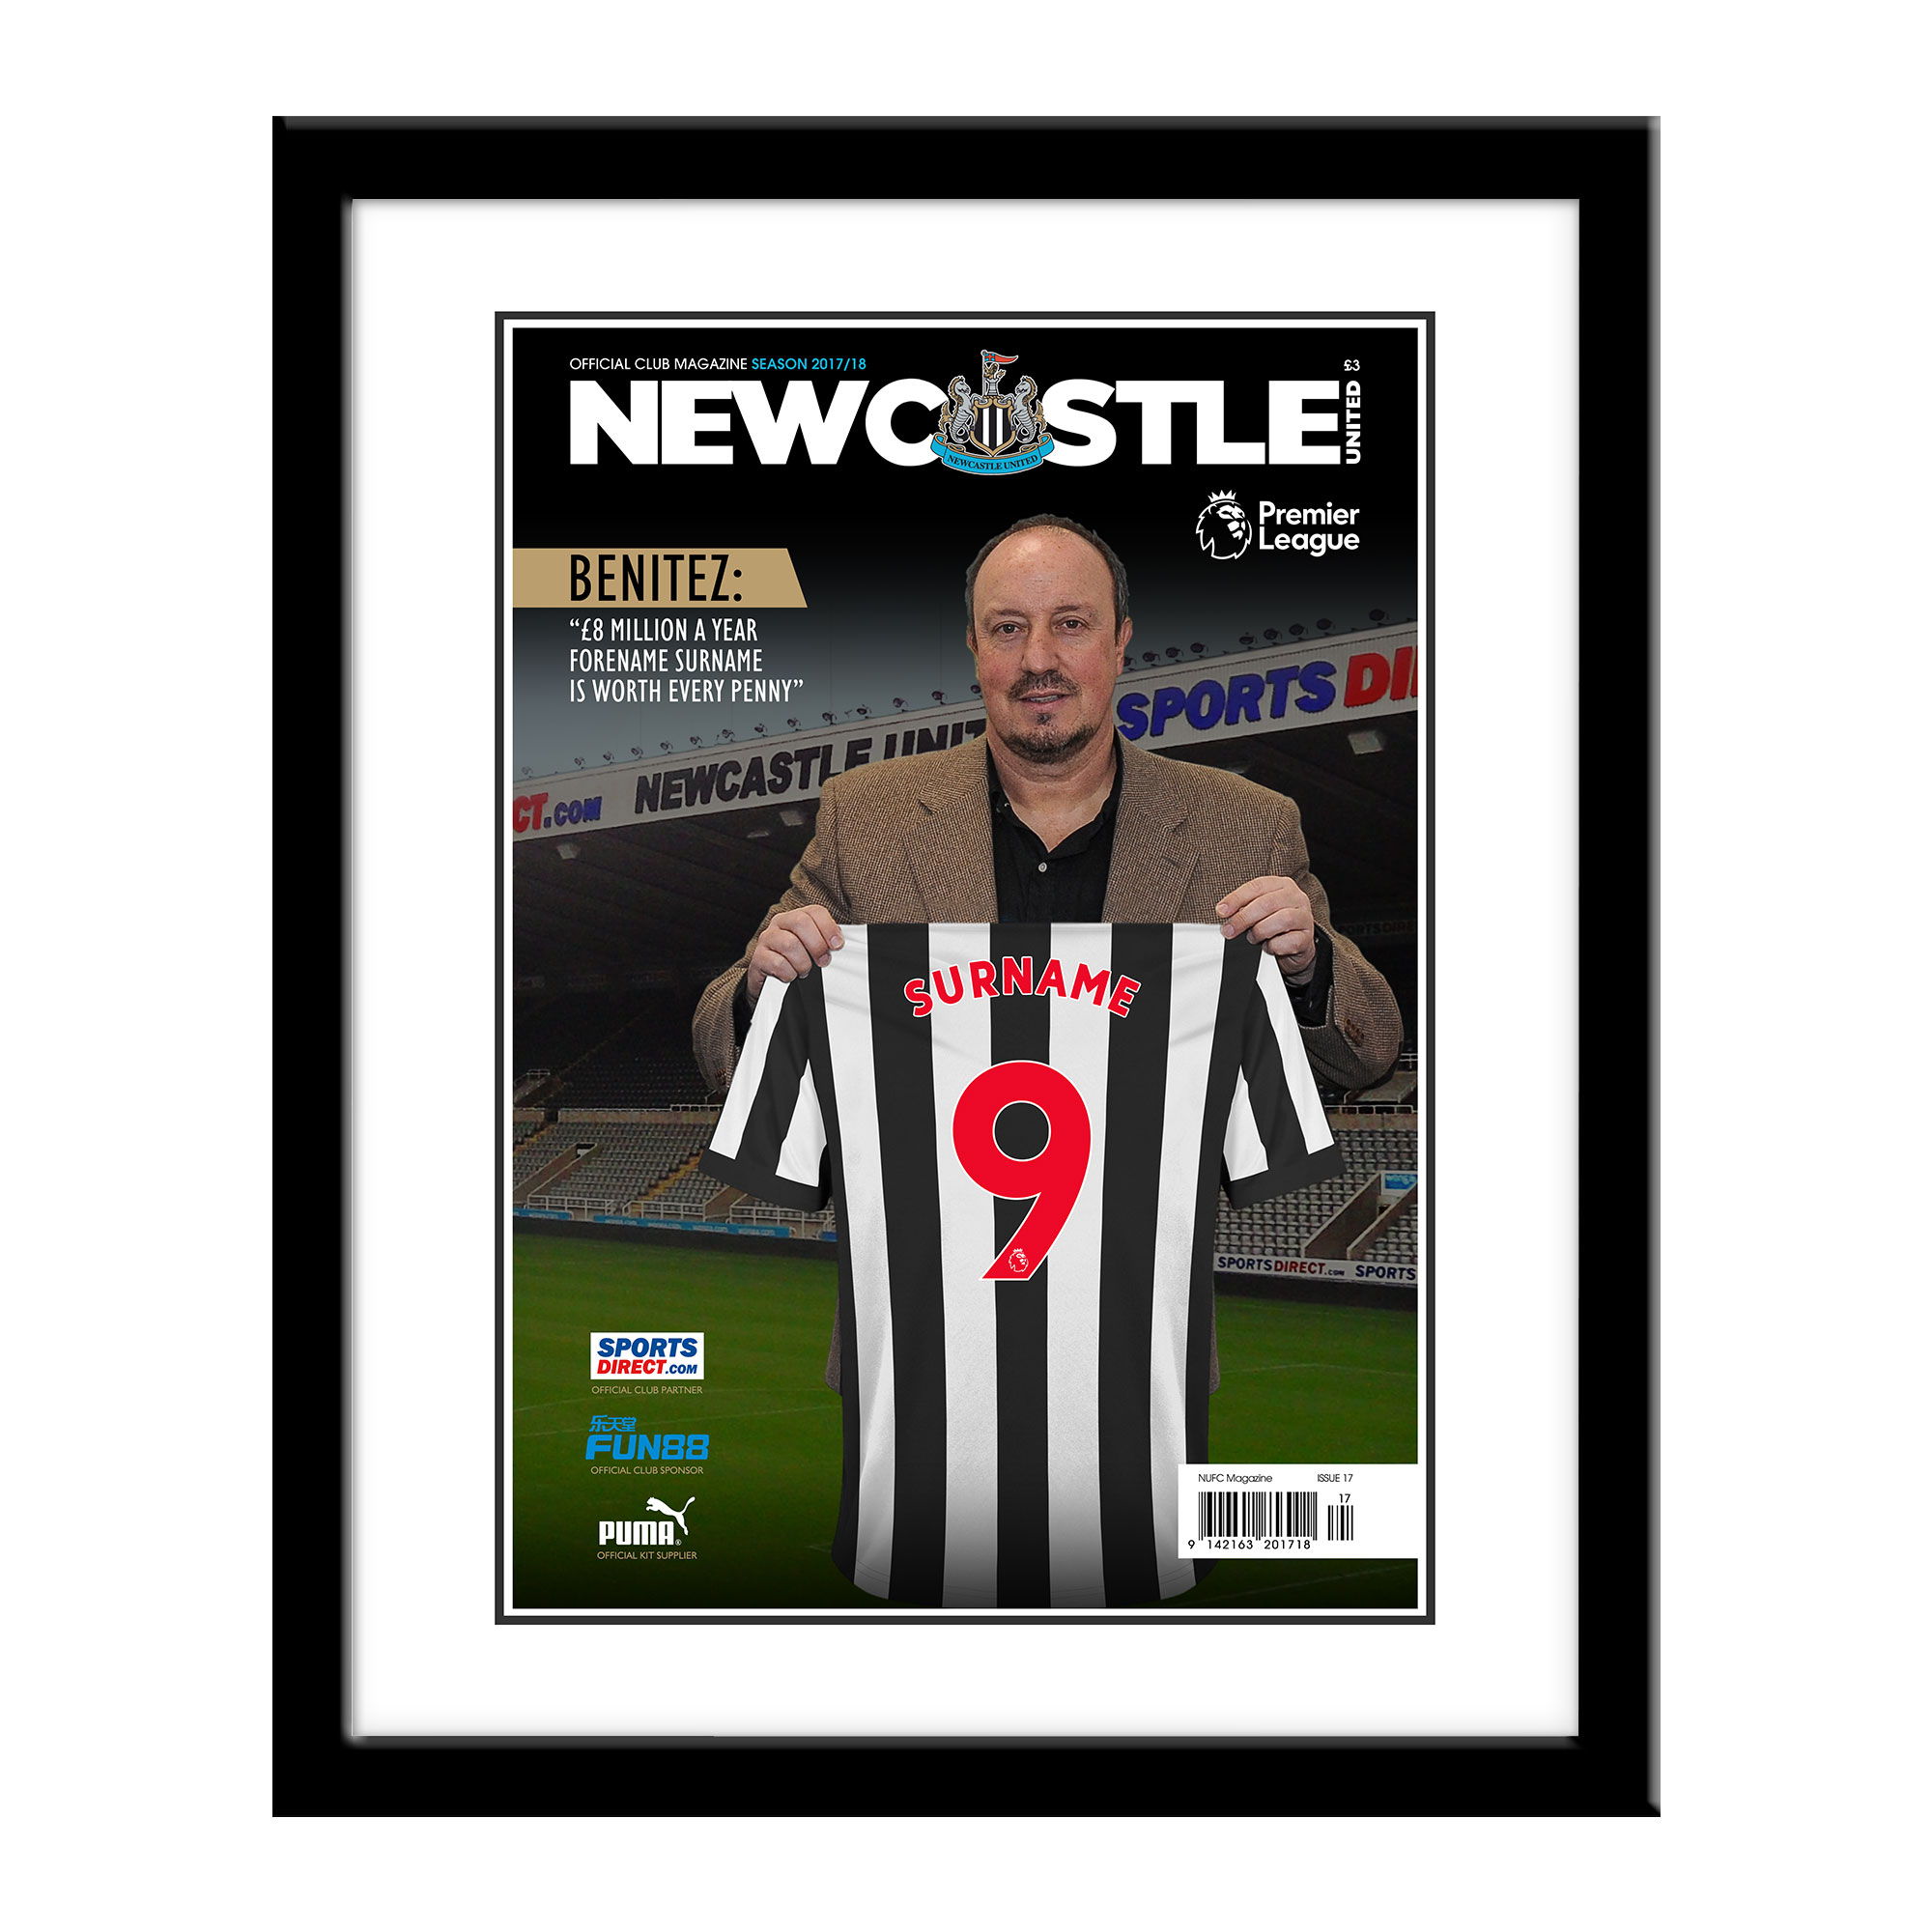 Newcastle United FC Magazine Front Cover Framed Print